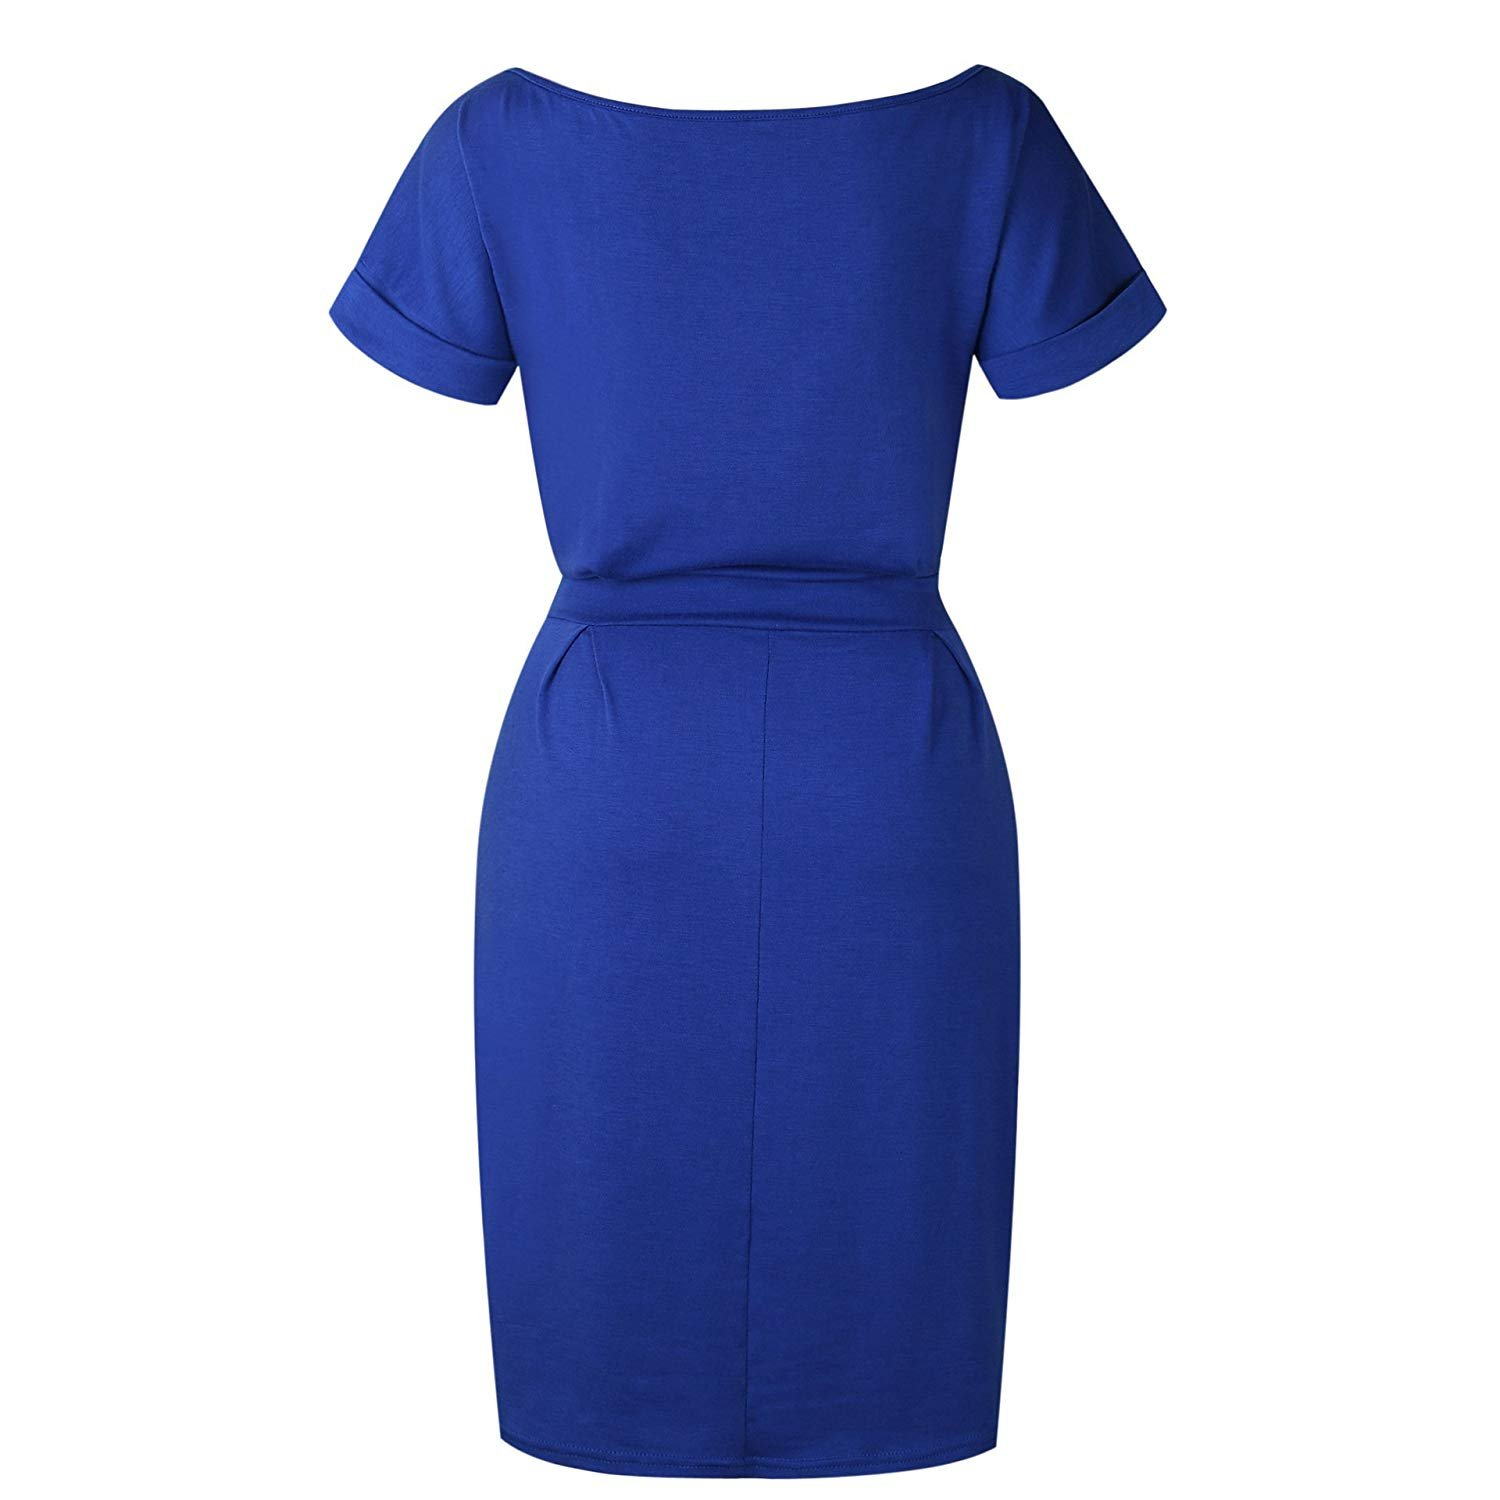 MIDOSOO Womens Business Wear to Work Short Sleeve Pencil Dress with Pockets Blue M by MIDOSOO (Image #5)